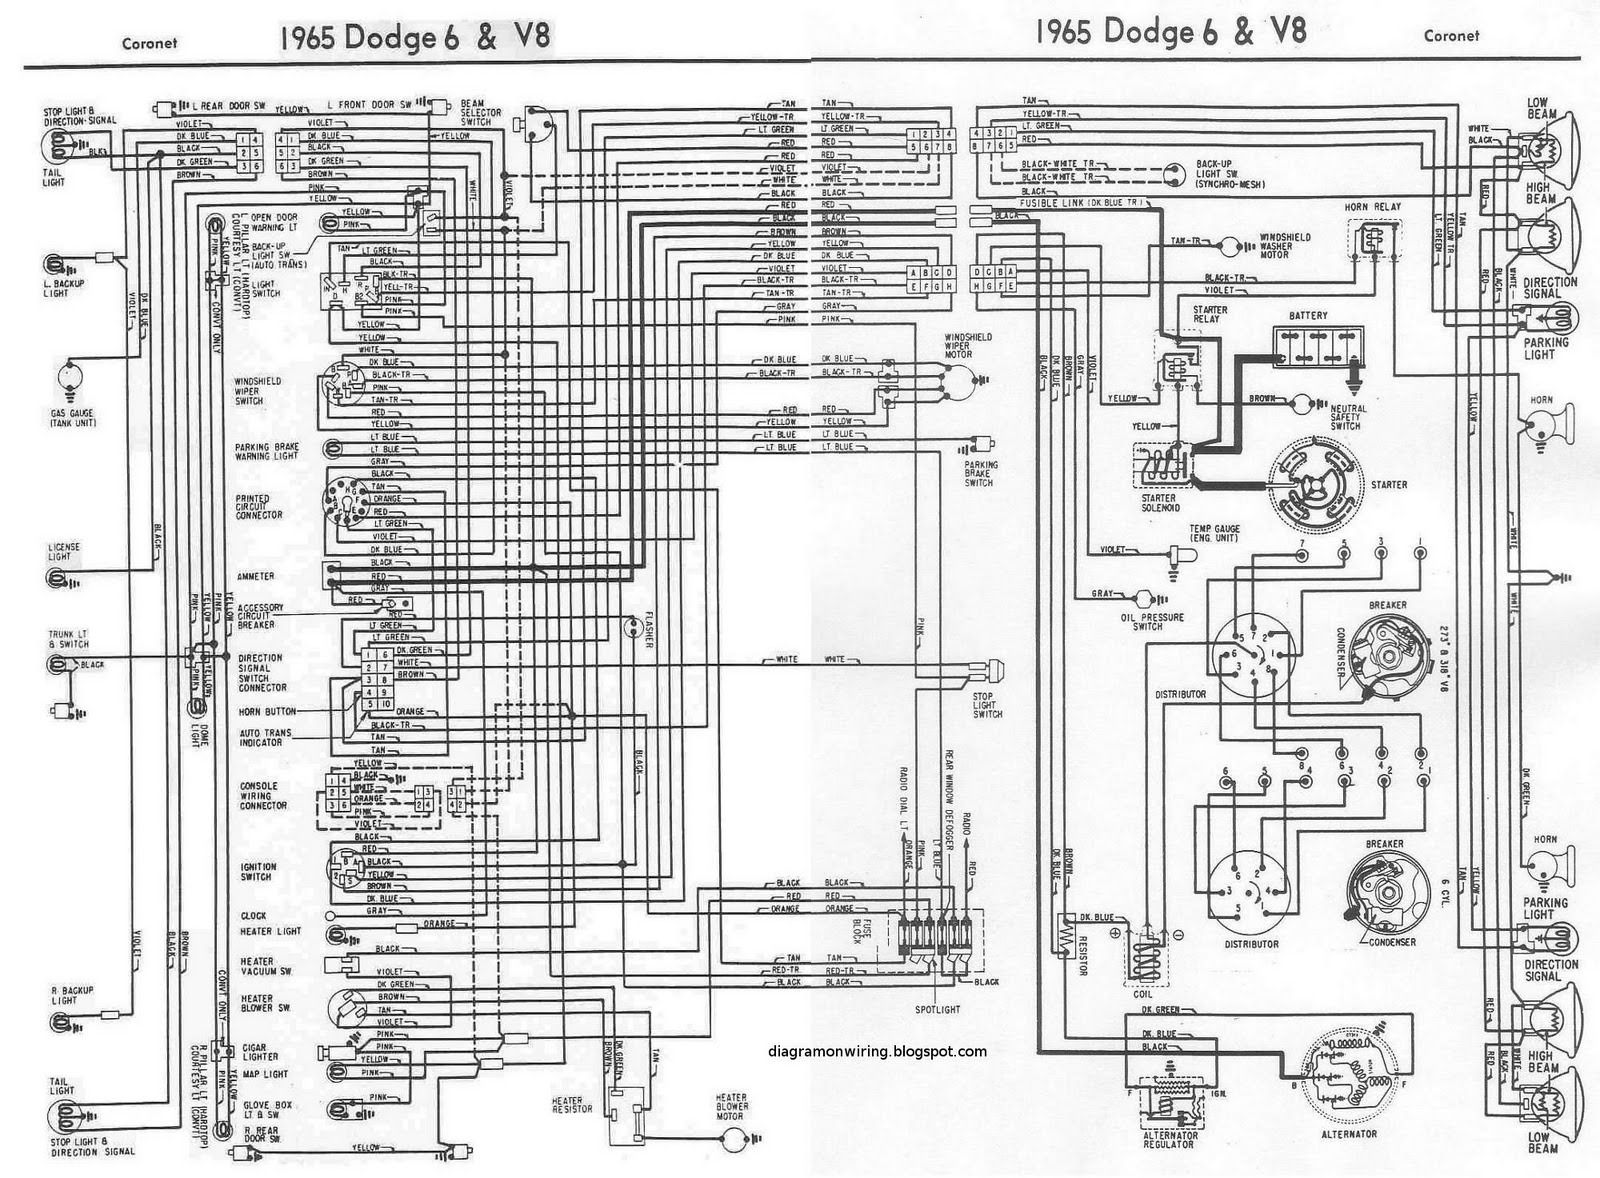 1967 dodge charger wiring diagram wire center u2022 rh linxglobal co 1970 dodge charger 1973 dodge [ 1600 x 1178 Pixel ]